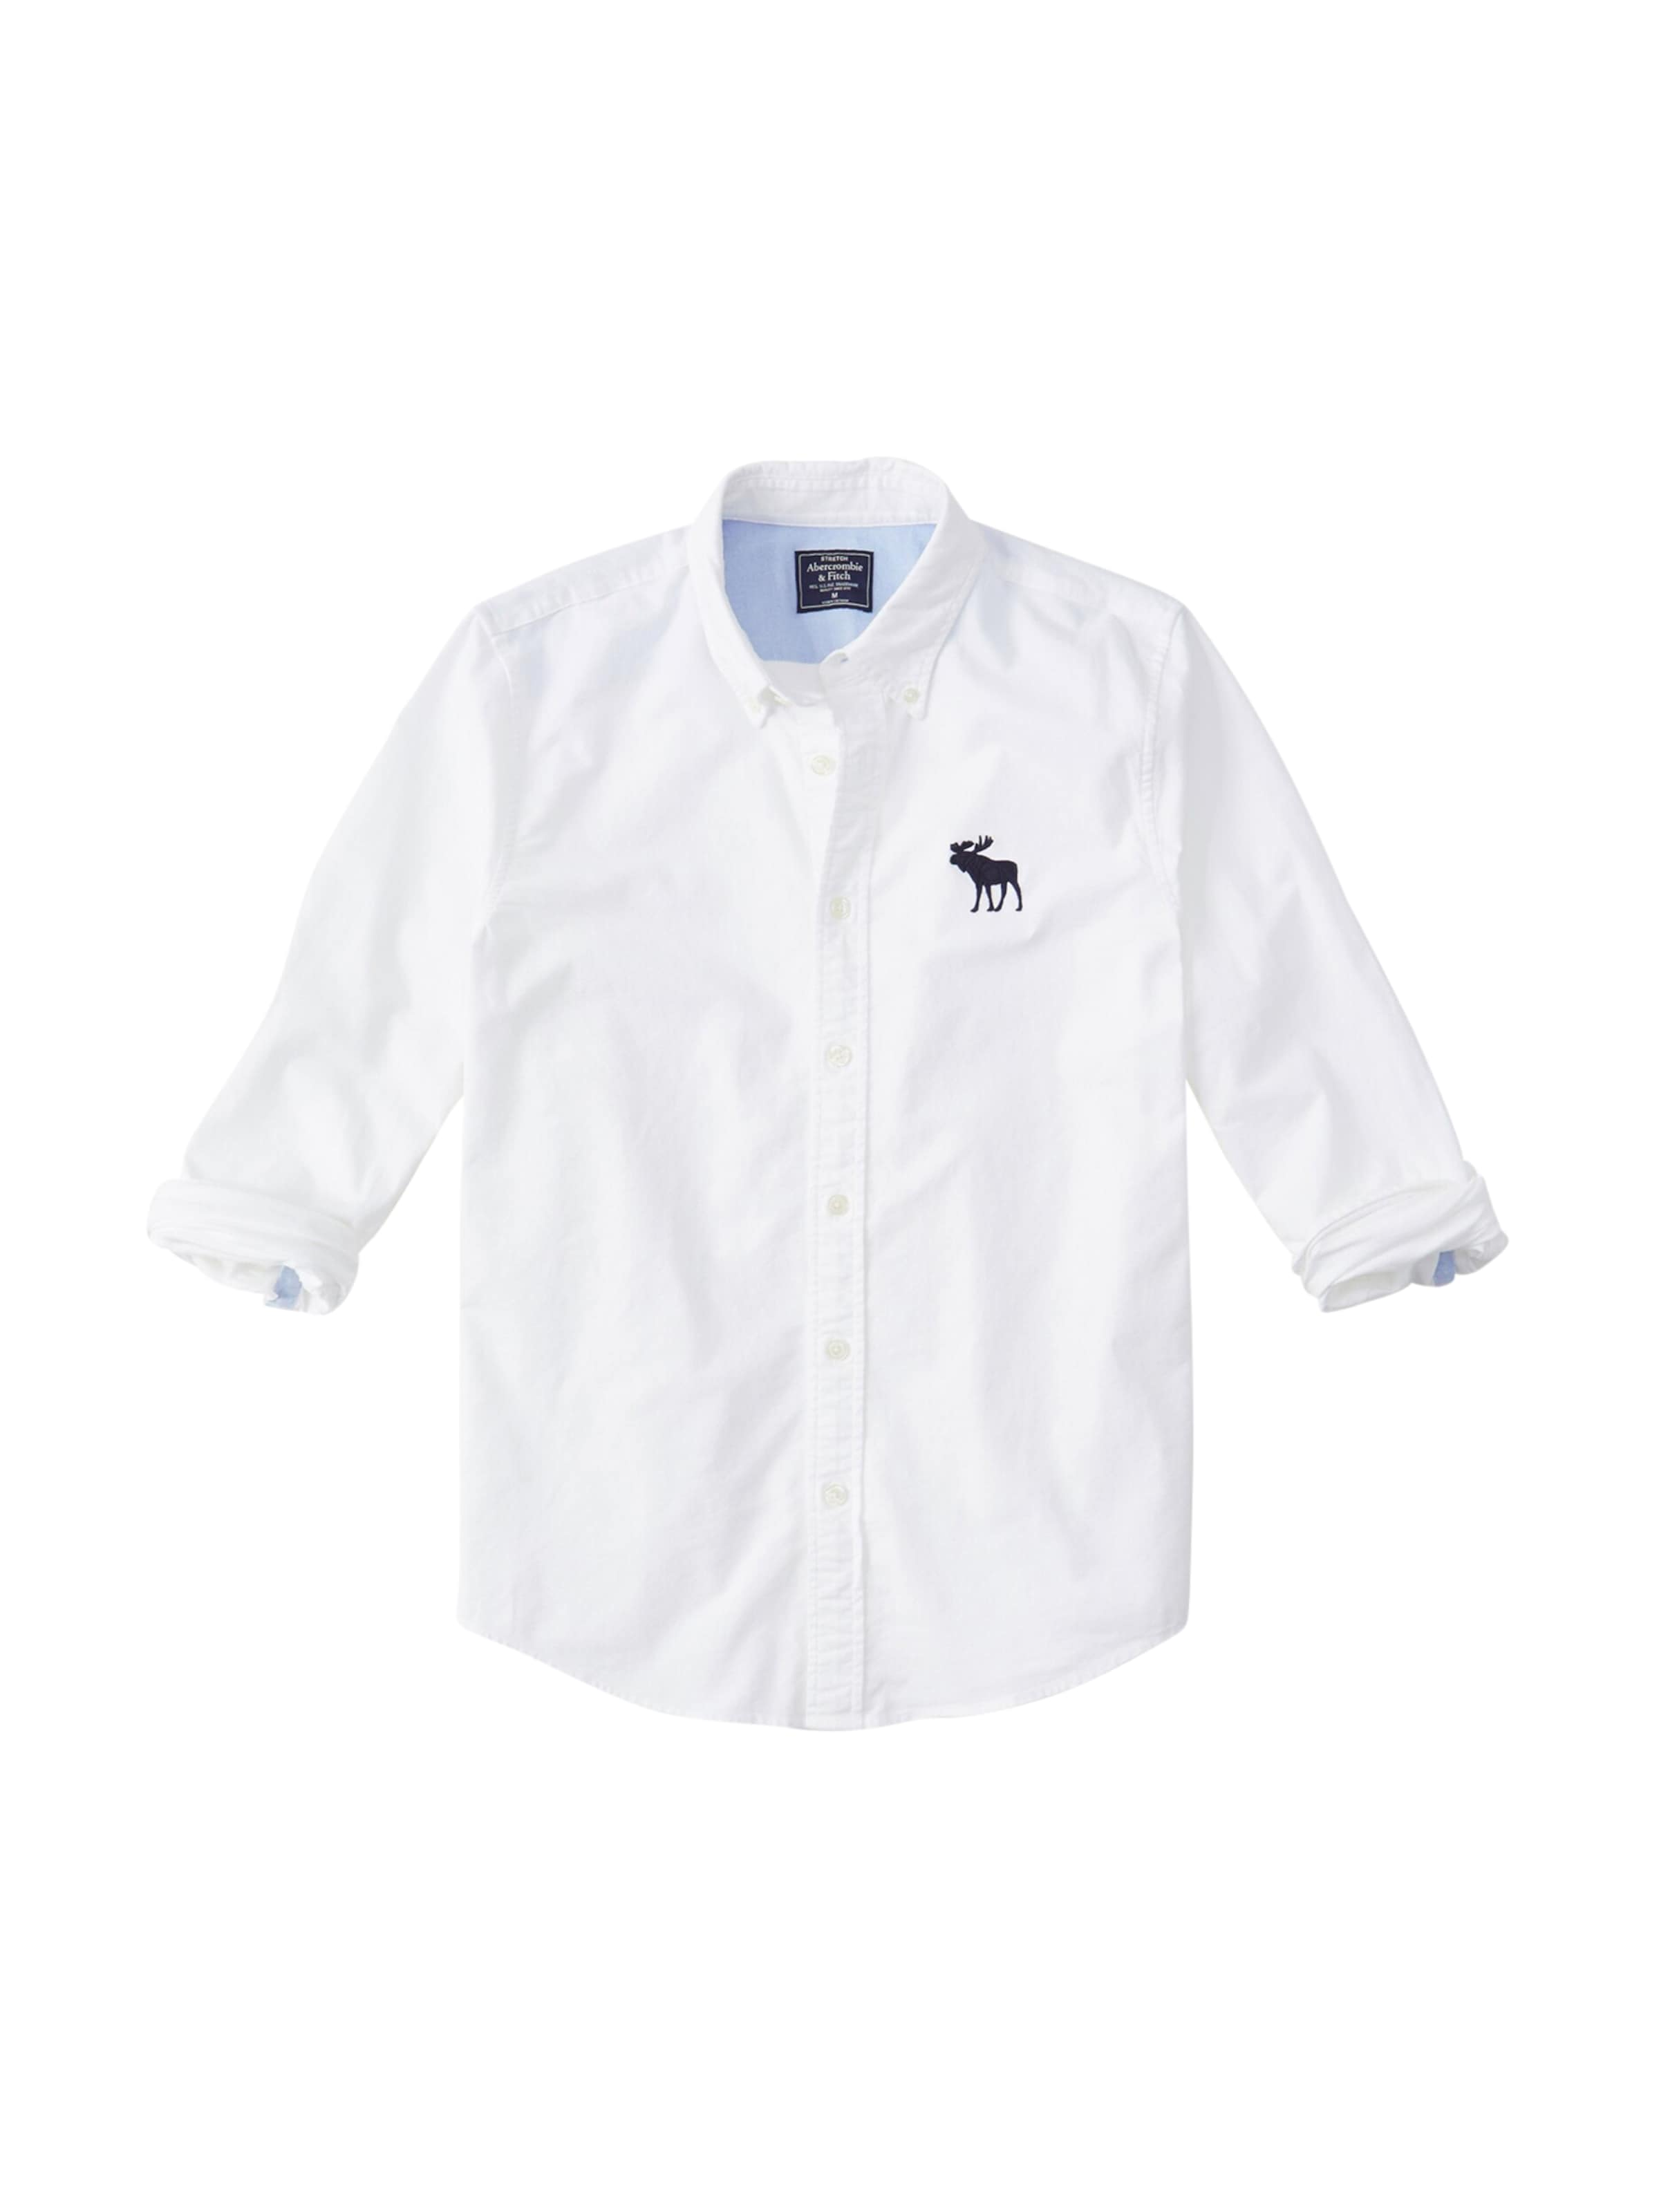 En Chemise Fitch Abercrombieamp; Blanc Abercrombieamp; Chemise Fitch rdoxeWBC